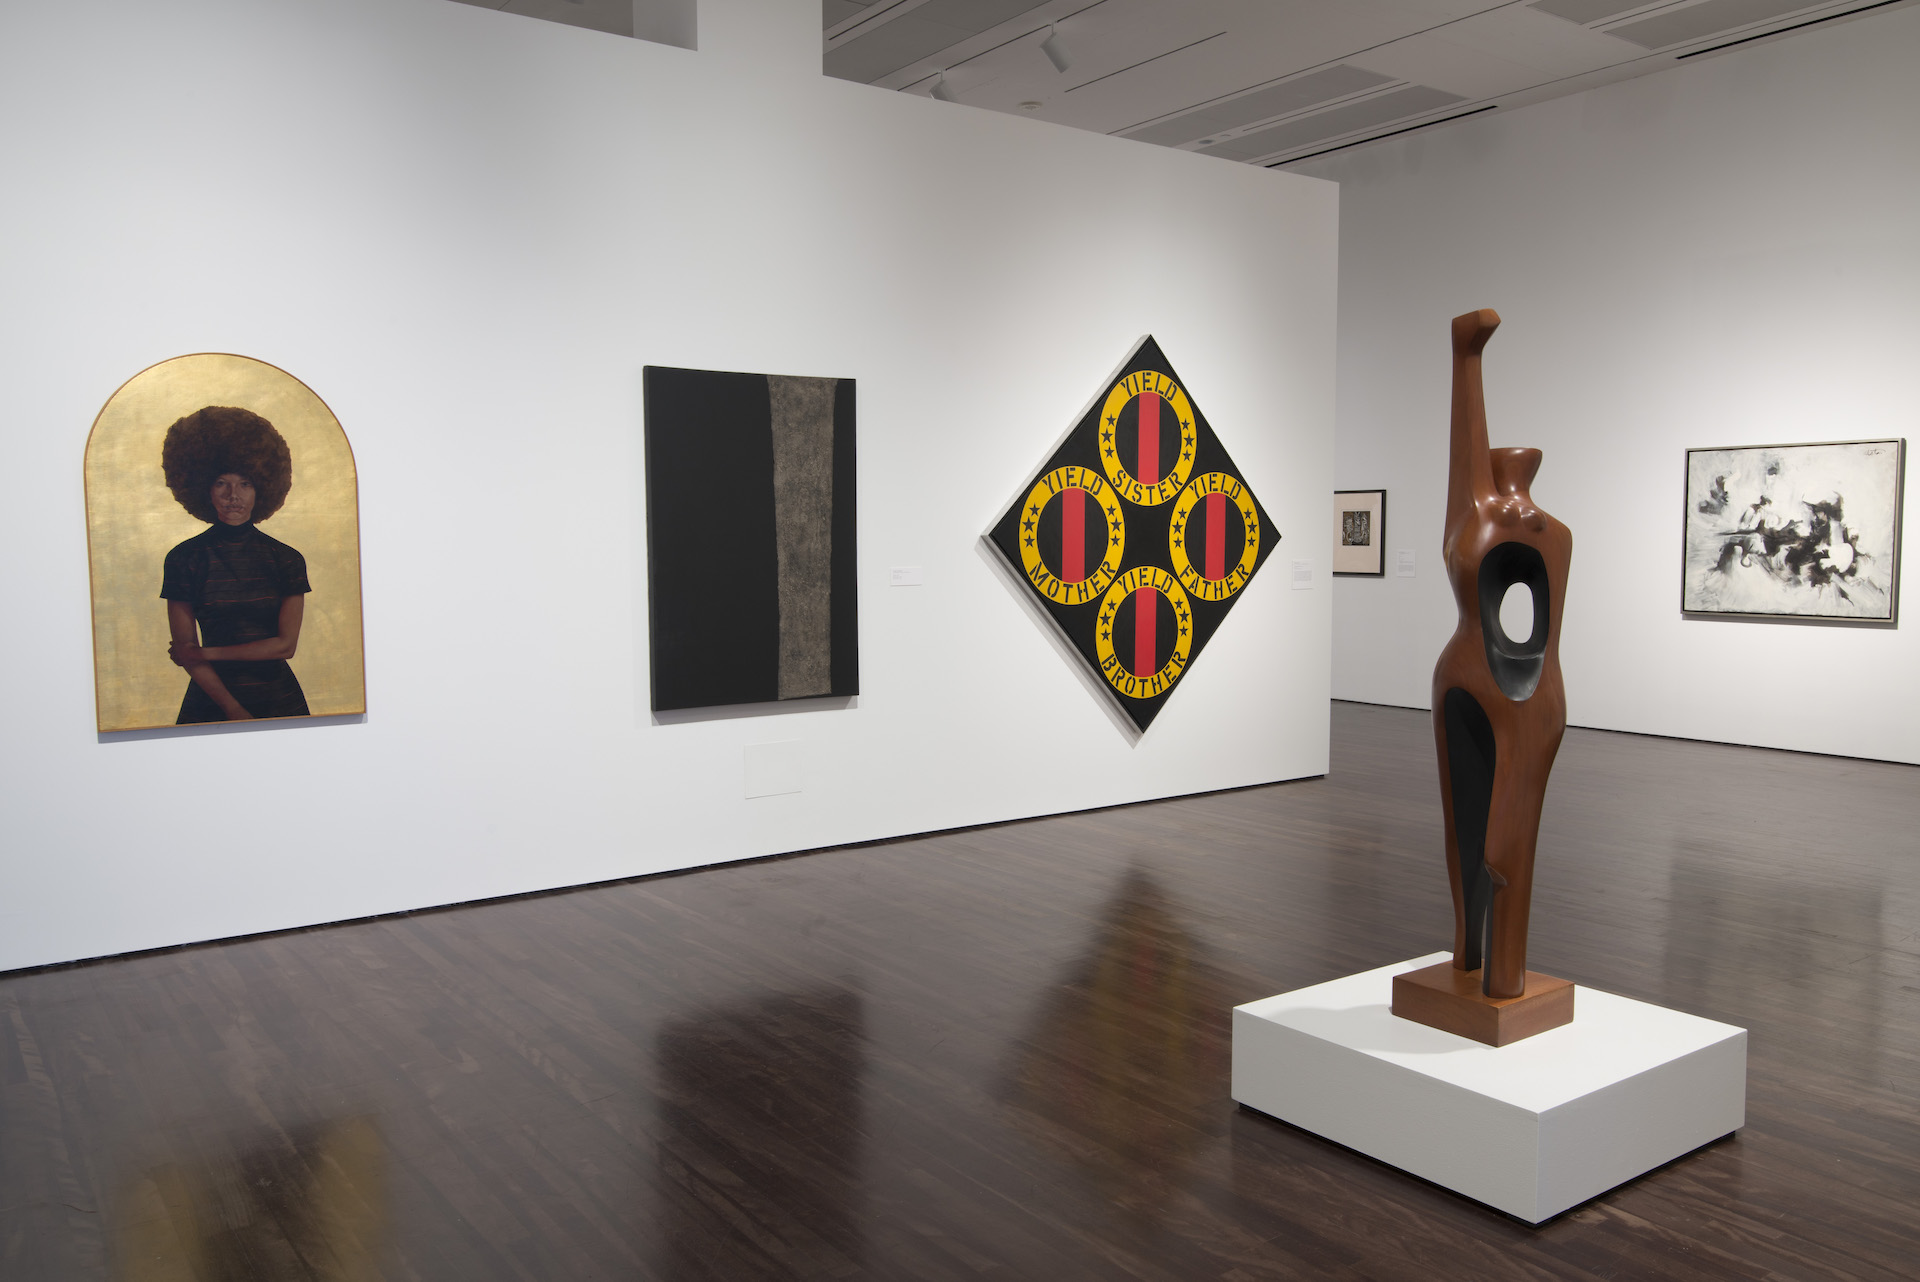 """Installation view of """"Witness: Art and Civil Rights in the Sixties"""" at theBlanton Museum of Art, The University of Texas at Austin, February 15–May 10, 2015. Photo by Milli Appelgren."""